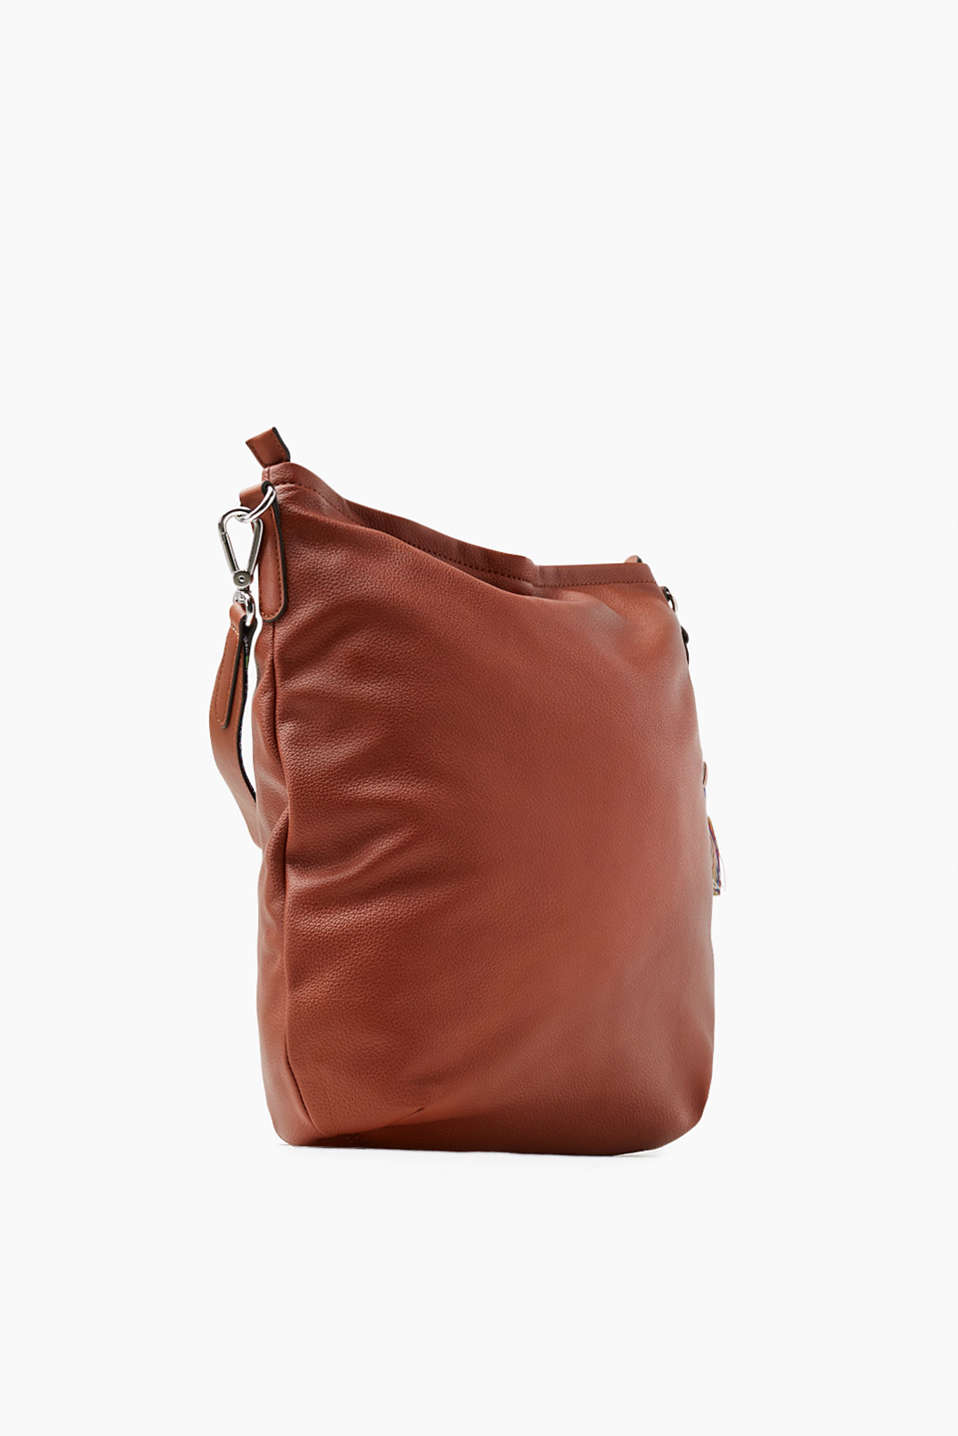 Trendige Hobo Bag in Leder-Optik